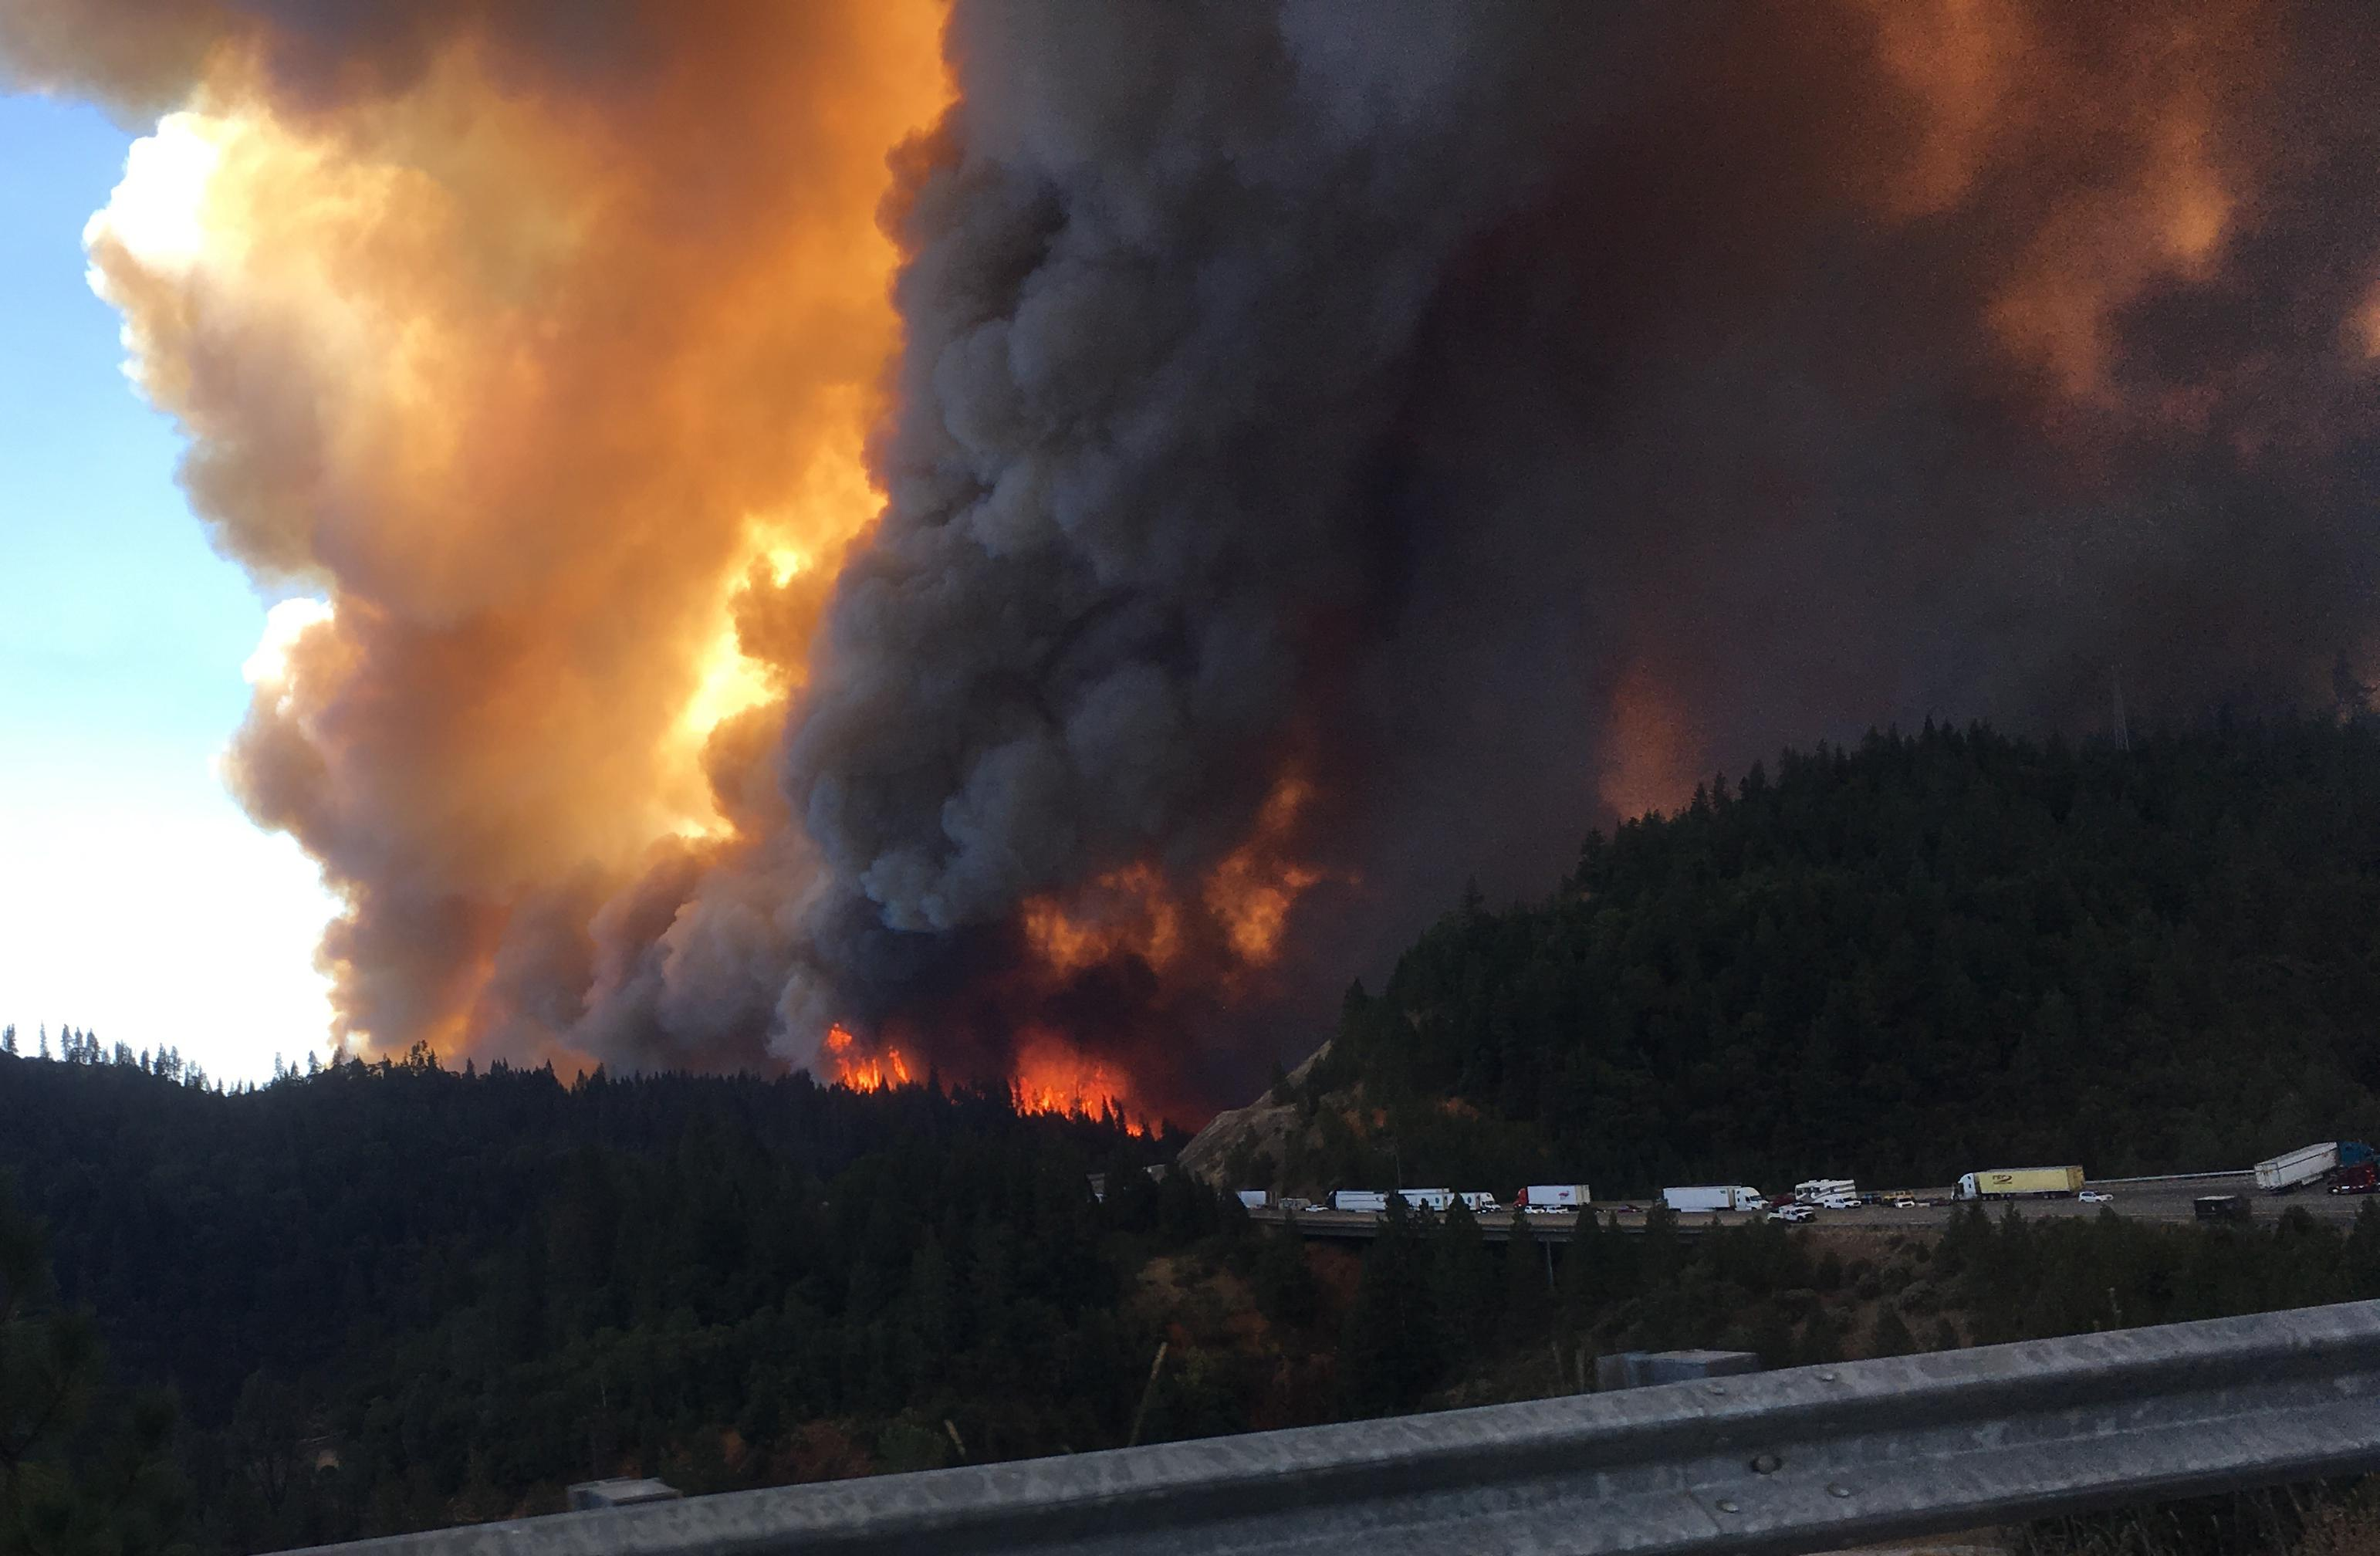 Reader Marti Root was heading south on Interstate 5 Wednesday when he saw this scary sight: the Delta fire, which developed into a wall of flame within 20 minutes. He was able to turn around in stopped traffic, find an exit and head safely back north.